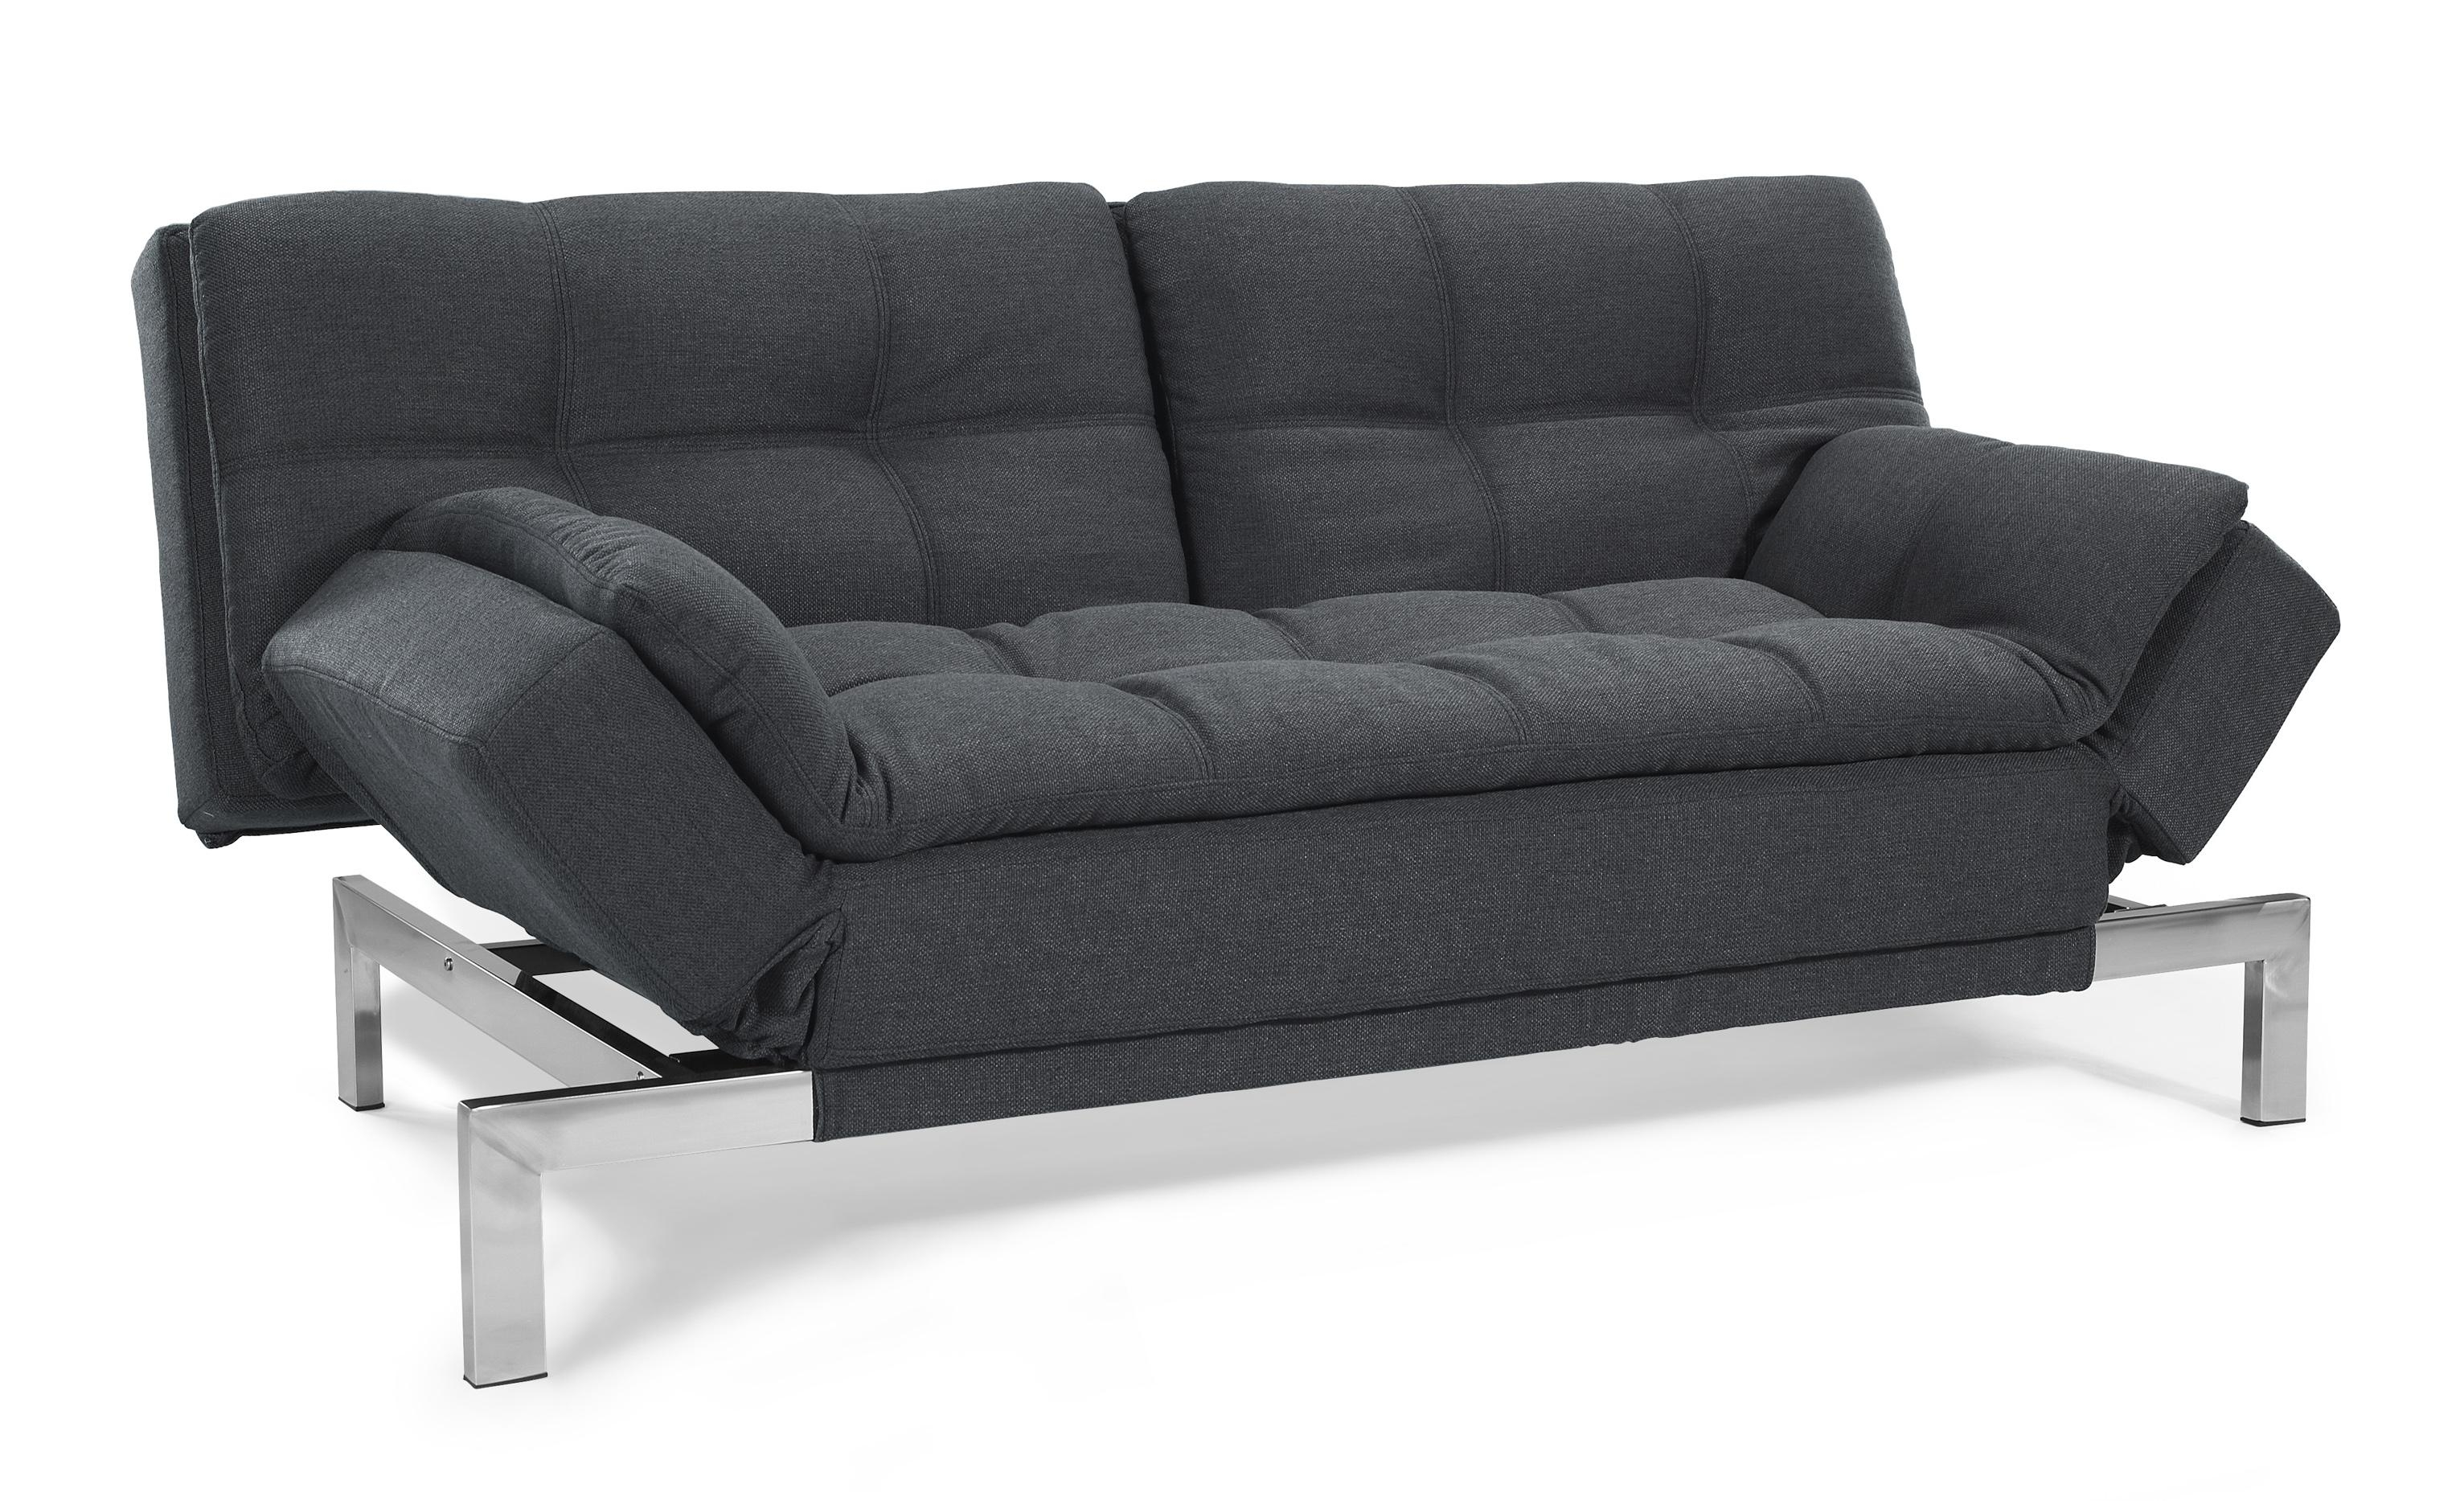 Lifestyle Solutions Boca Serta Convertible Sofa Sabocs3U4Cc For Sofa Convertibles (Image 13 of 20)